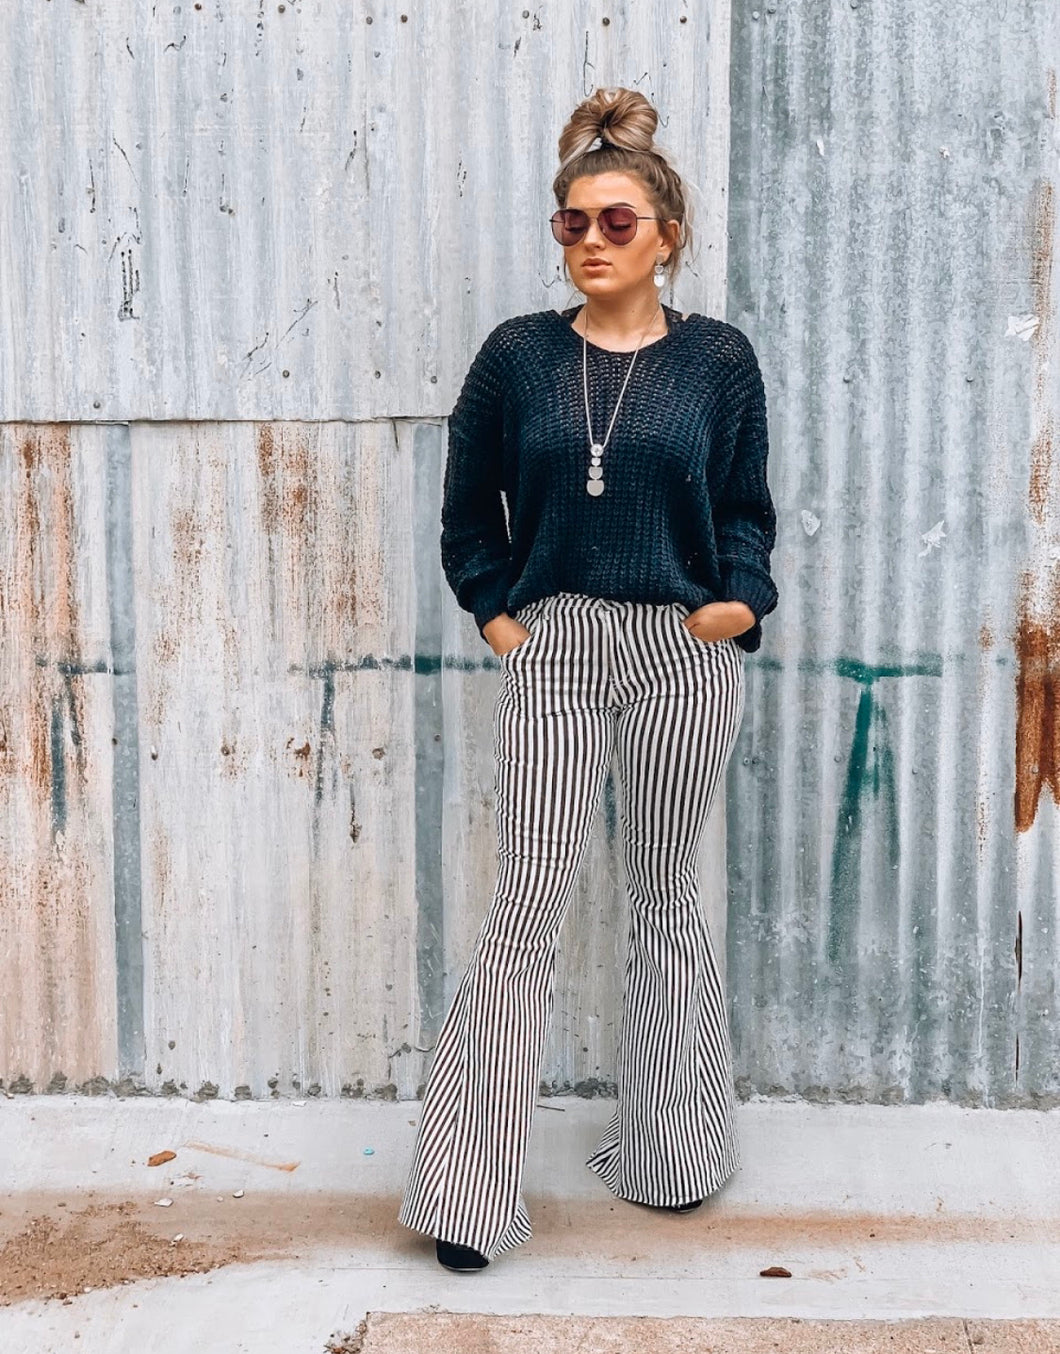 Black and White Flare Bell Bottoms